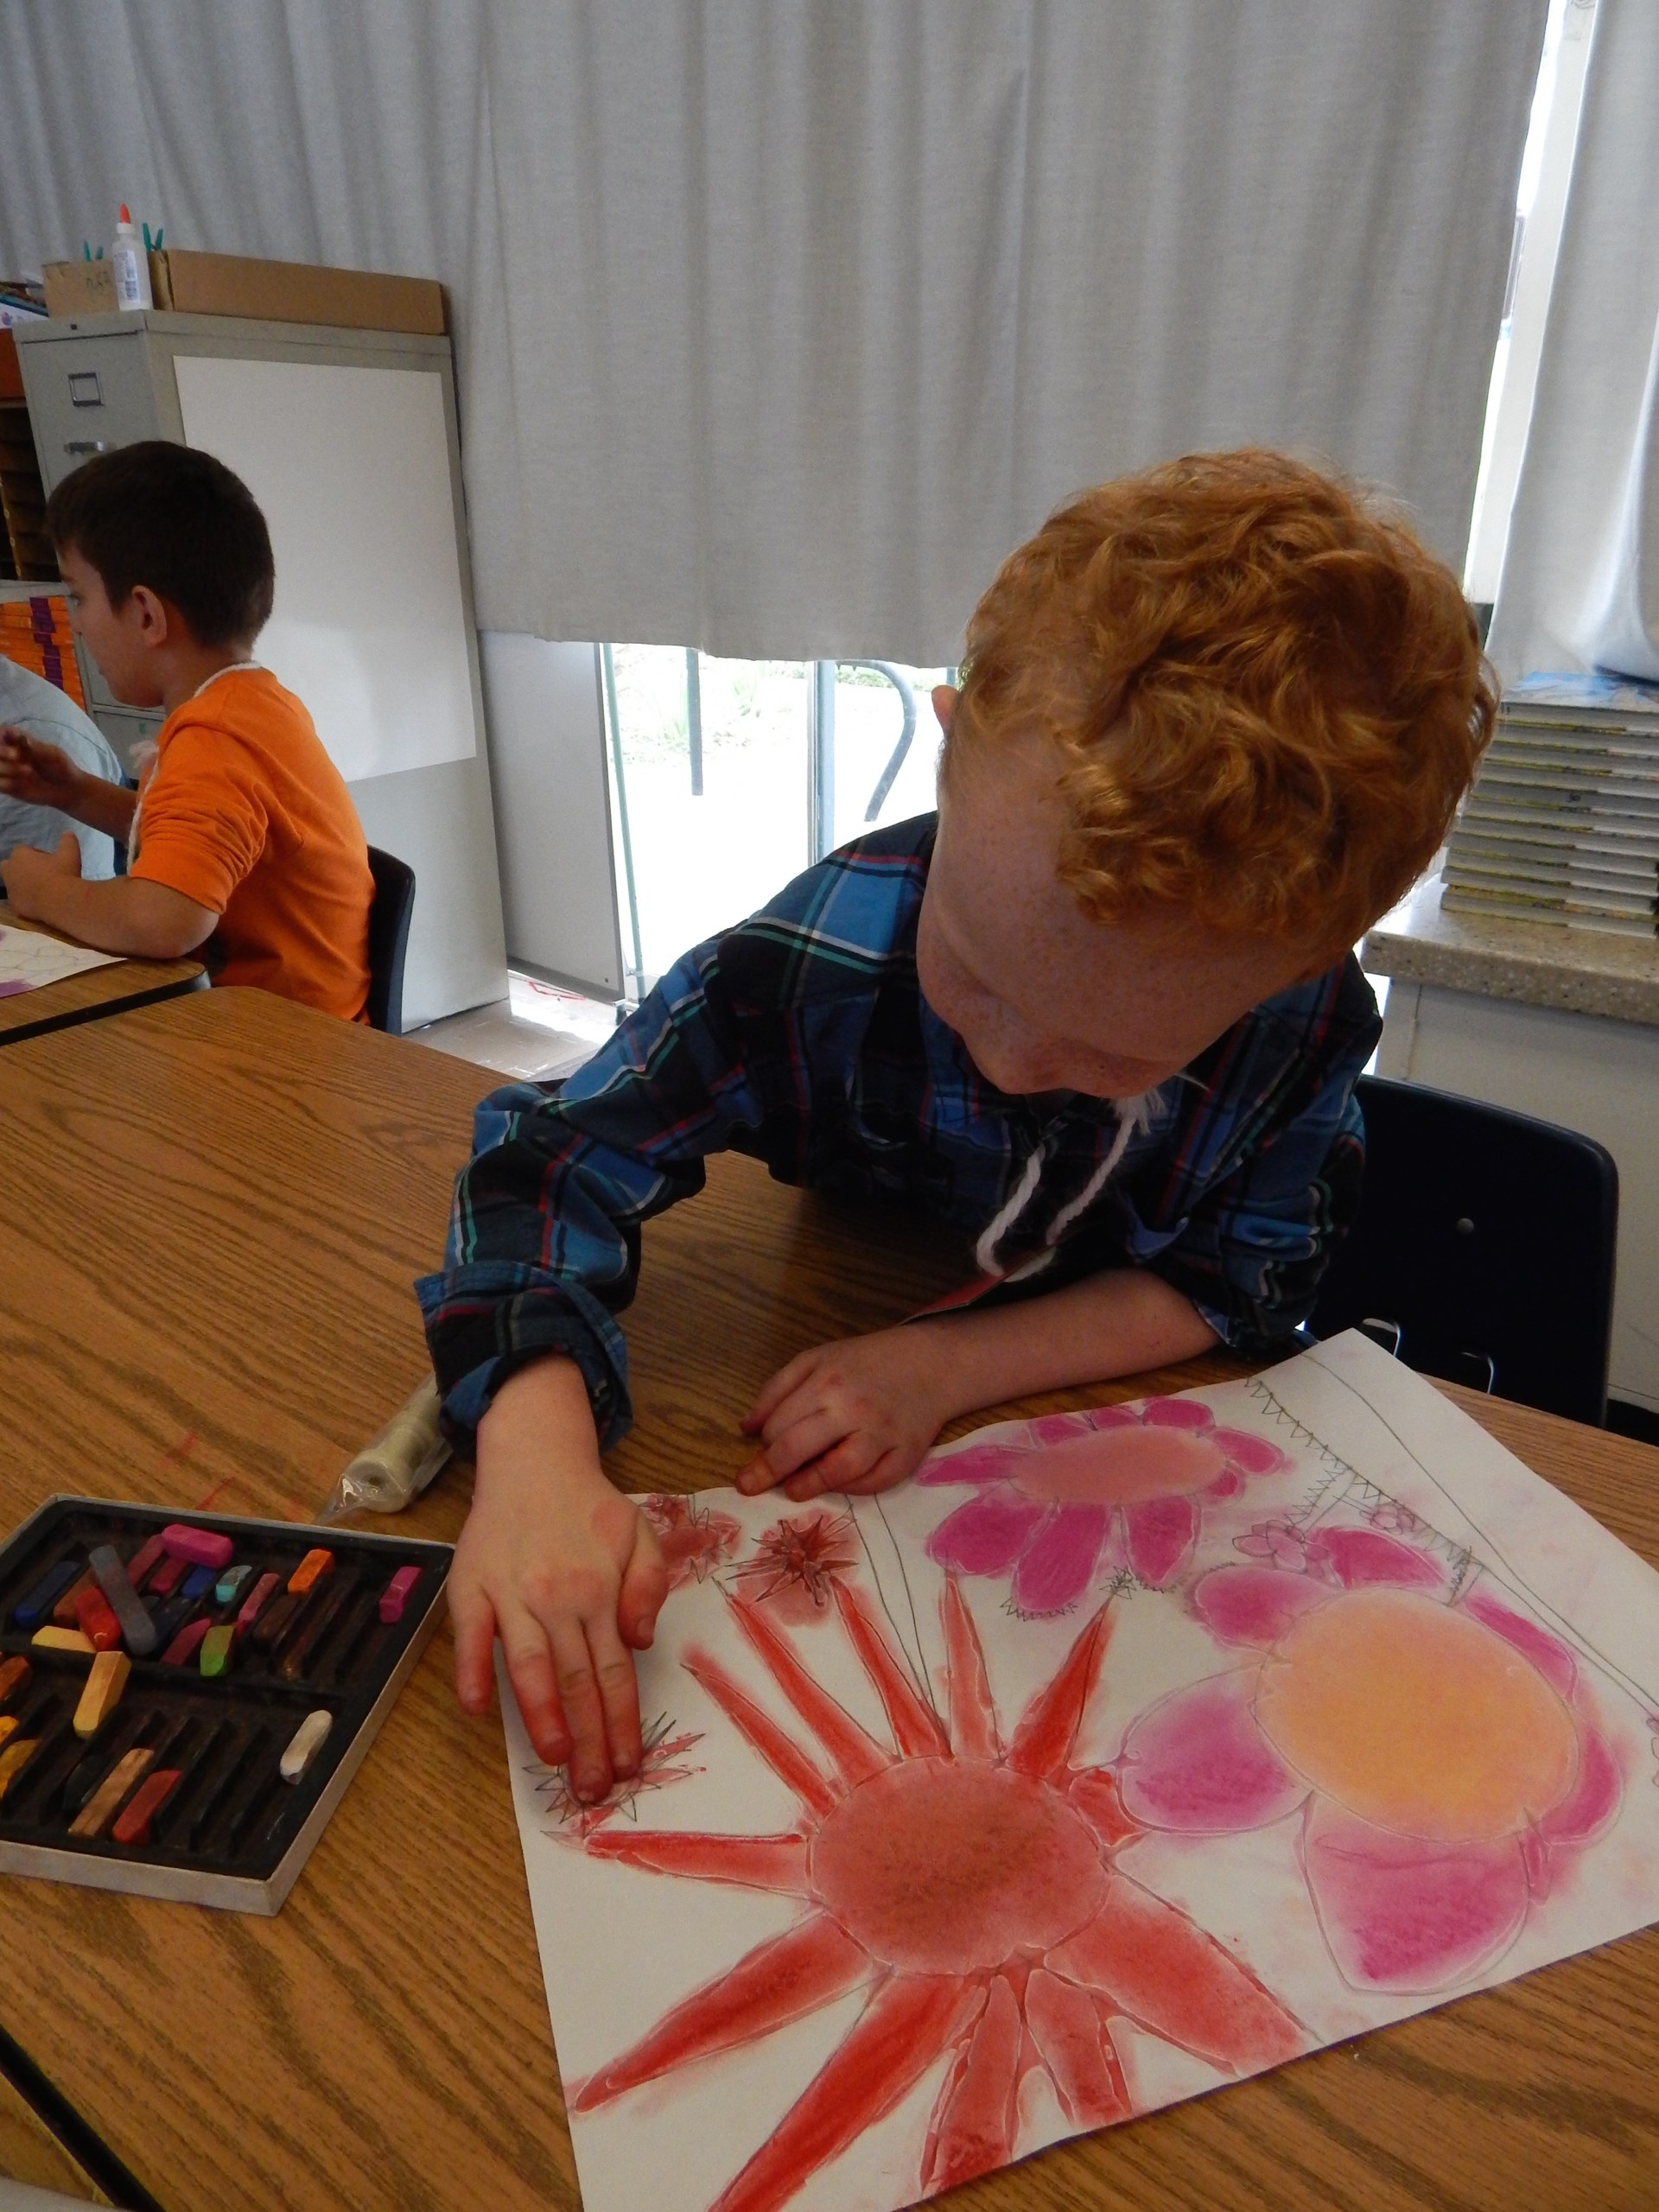 Boy drawing flowers with chalk pastels.